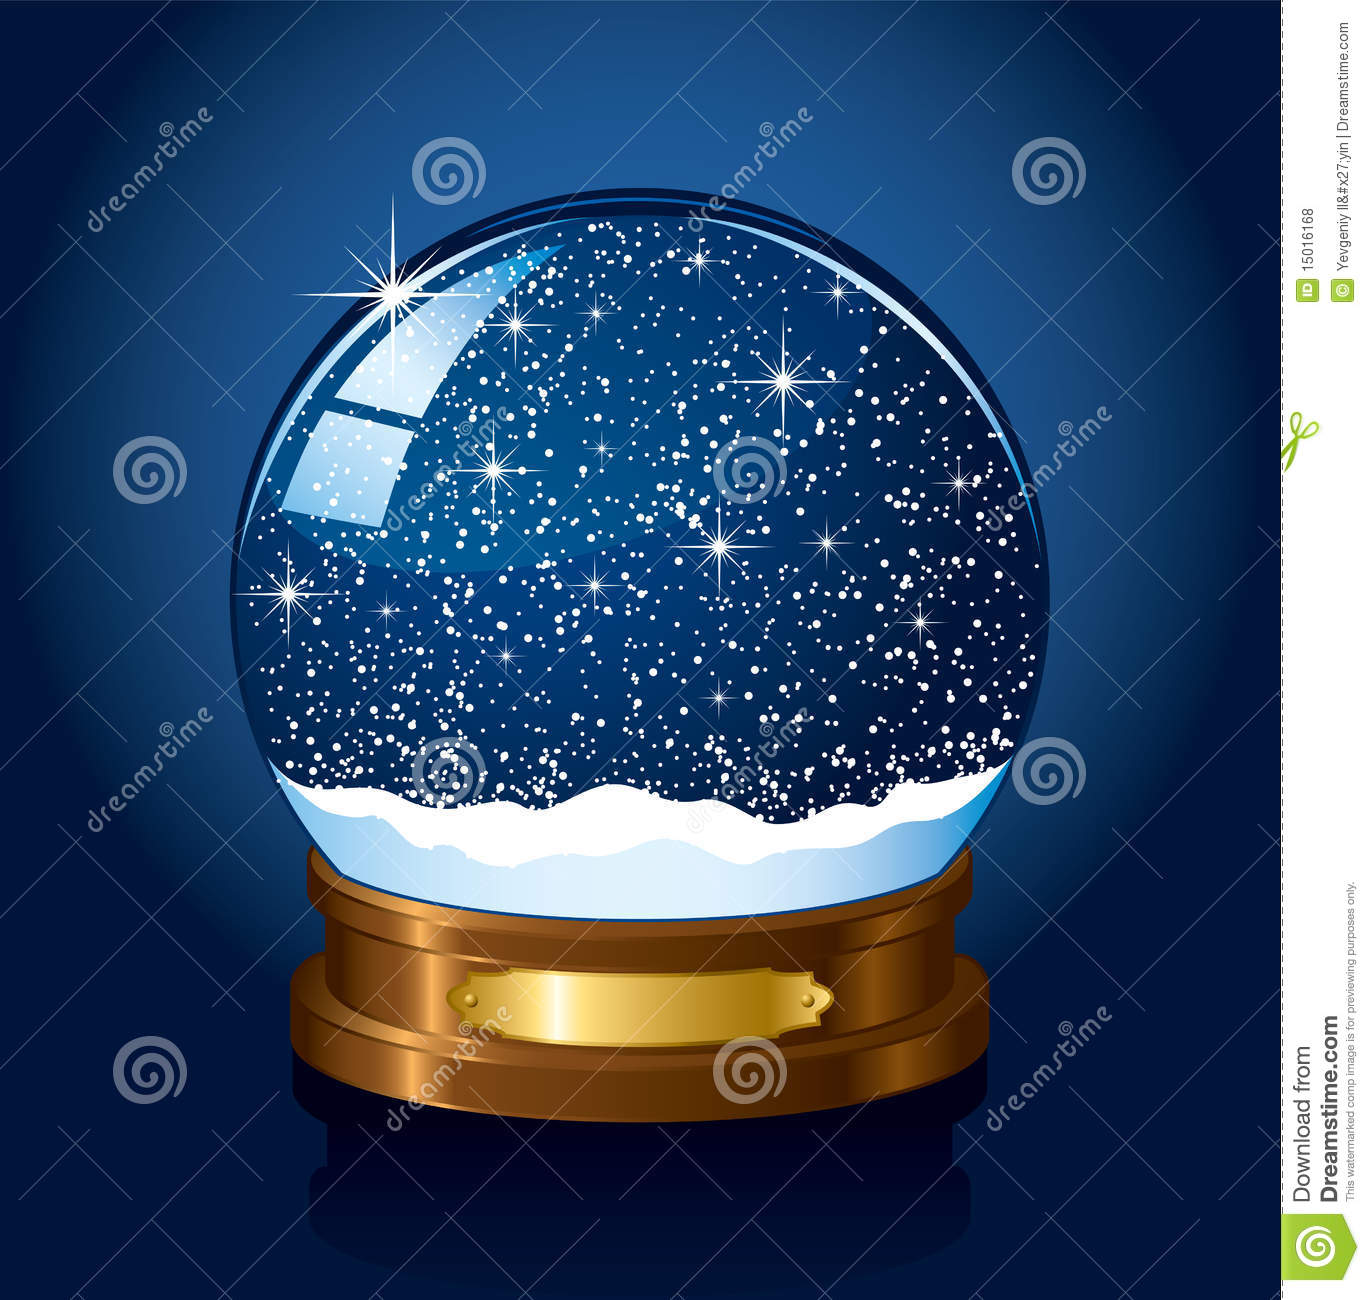 Free Animated Falling Snow Wallpaper Christmas Snow Globe Stock Vector Illustration Of Gold